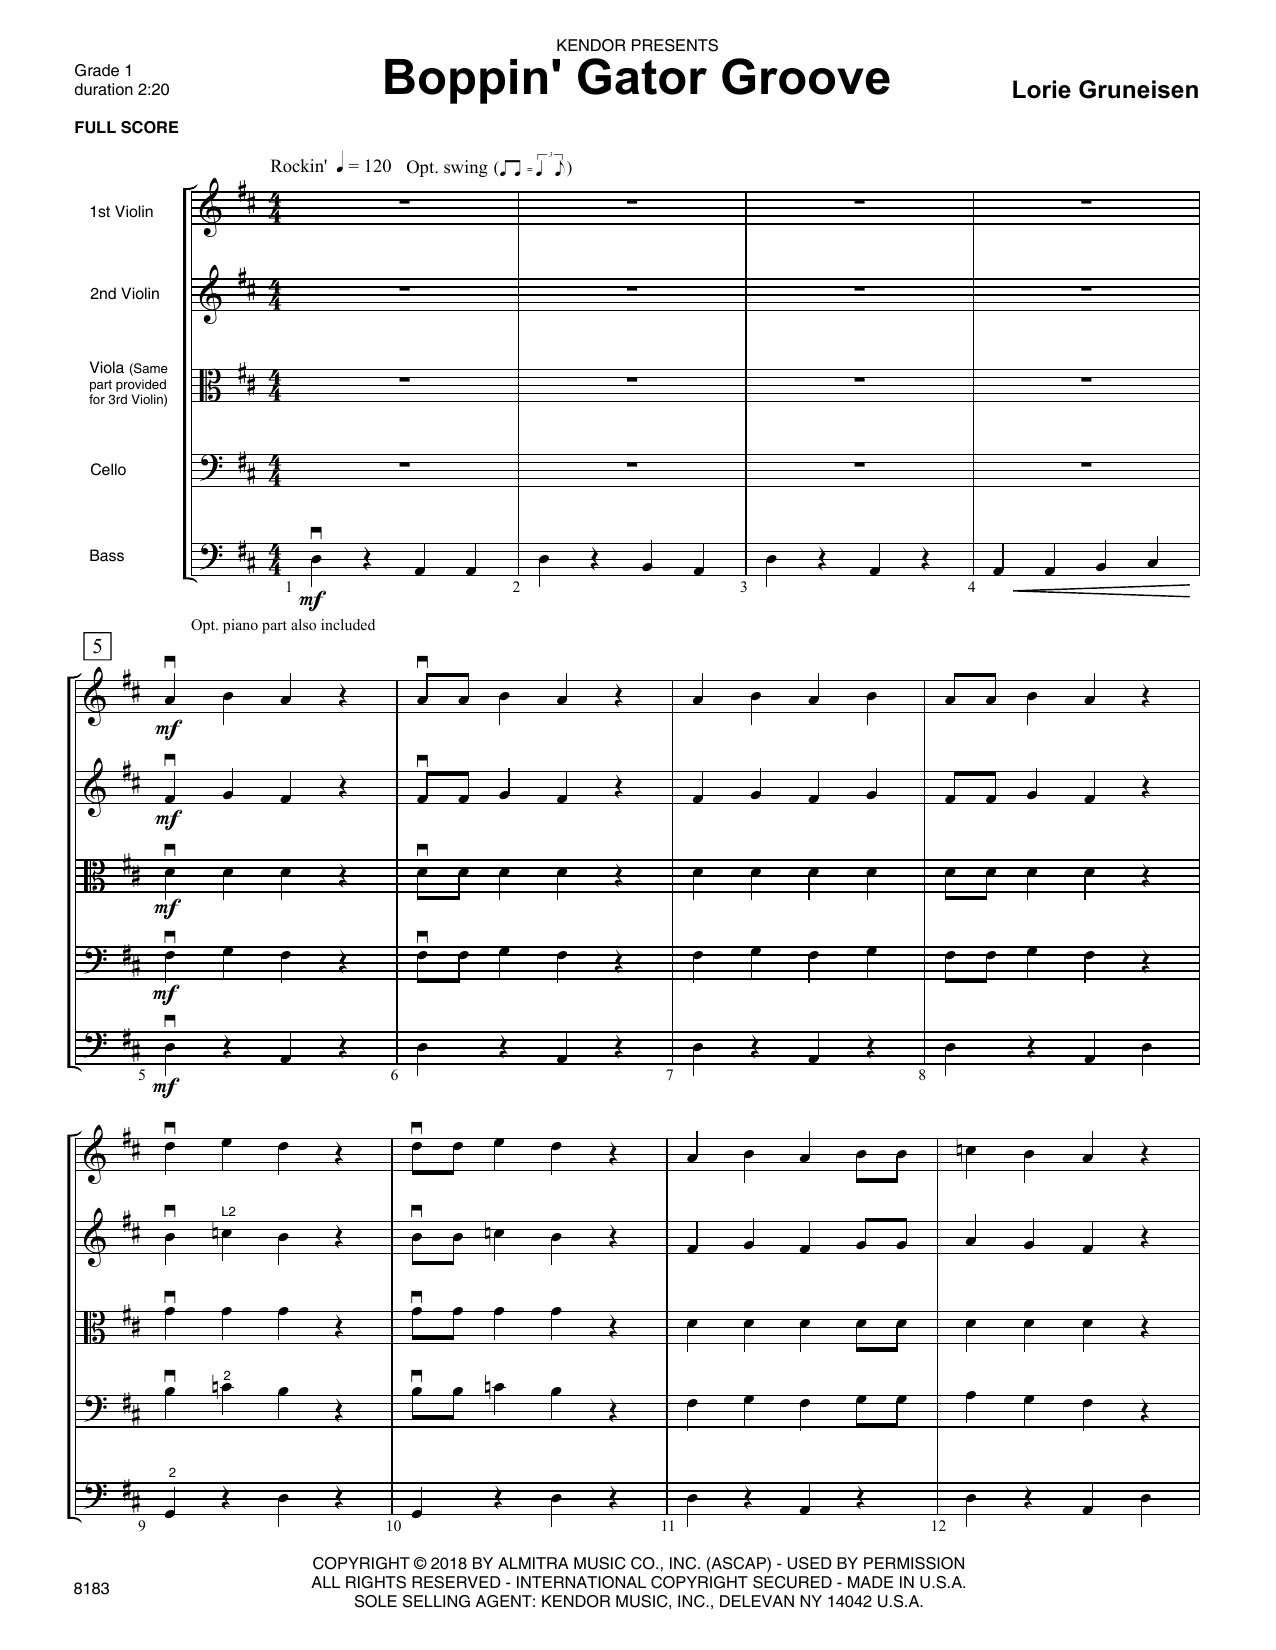 Lorie Gruneisen Boppin' Gator Groove - Full Score sheet music preview music notes and score for Orchestra including 7 page(s)